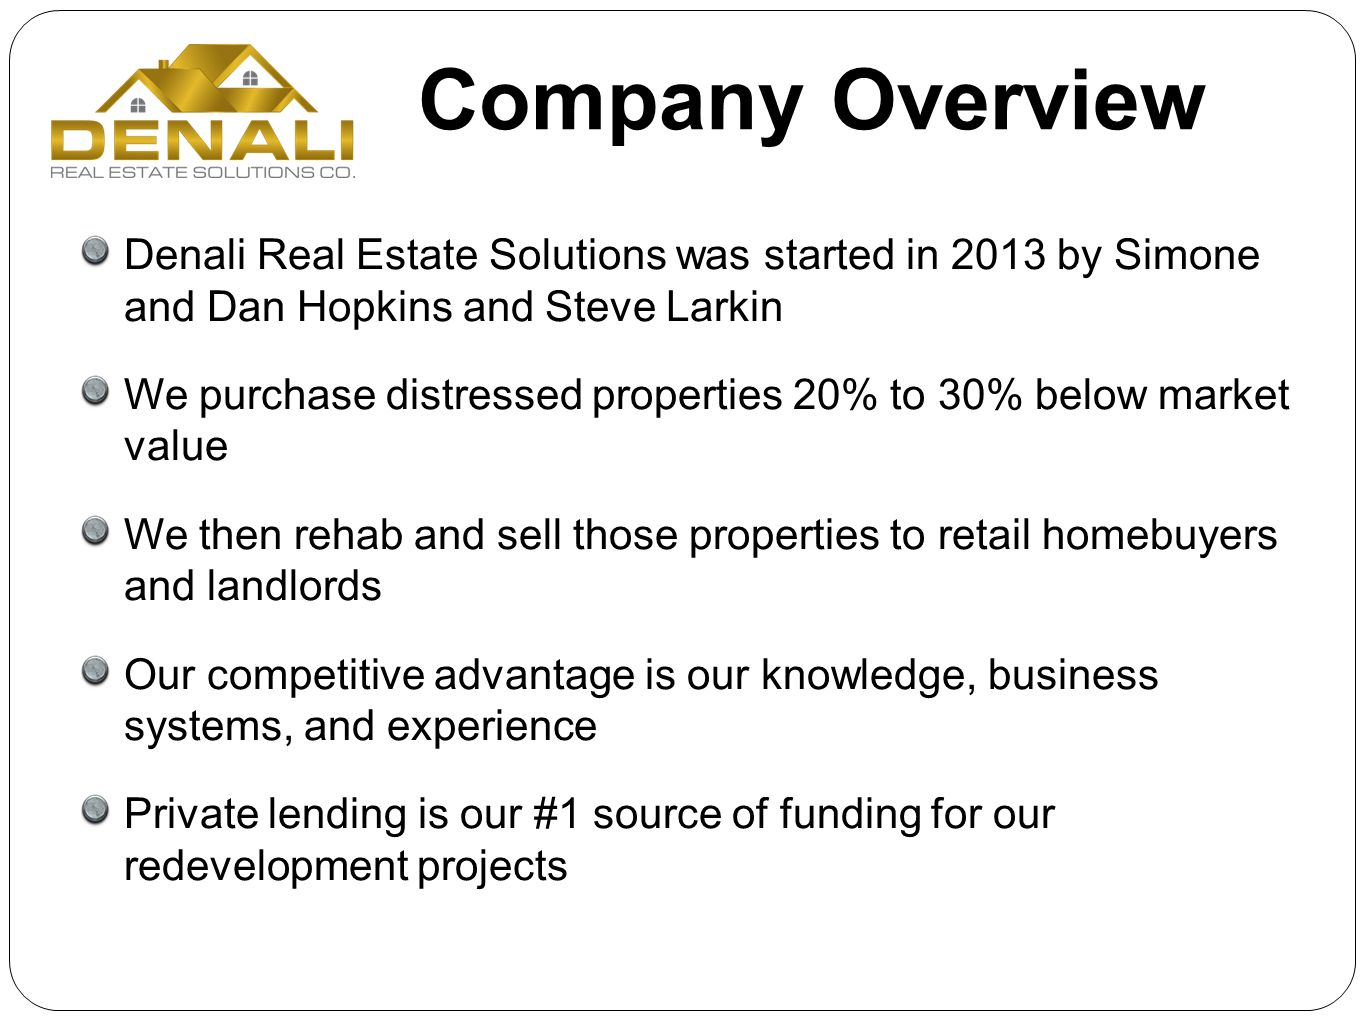 Company Overview Denali Real Estate Solutions was started in 2013 by Simone and Dan Hopkins and Steve Larkin.